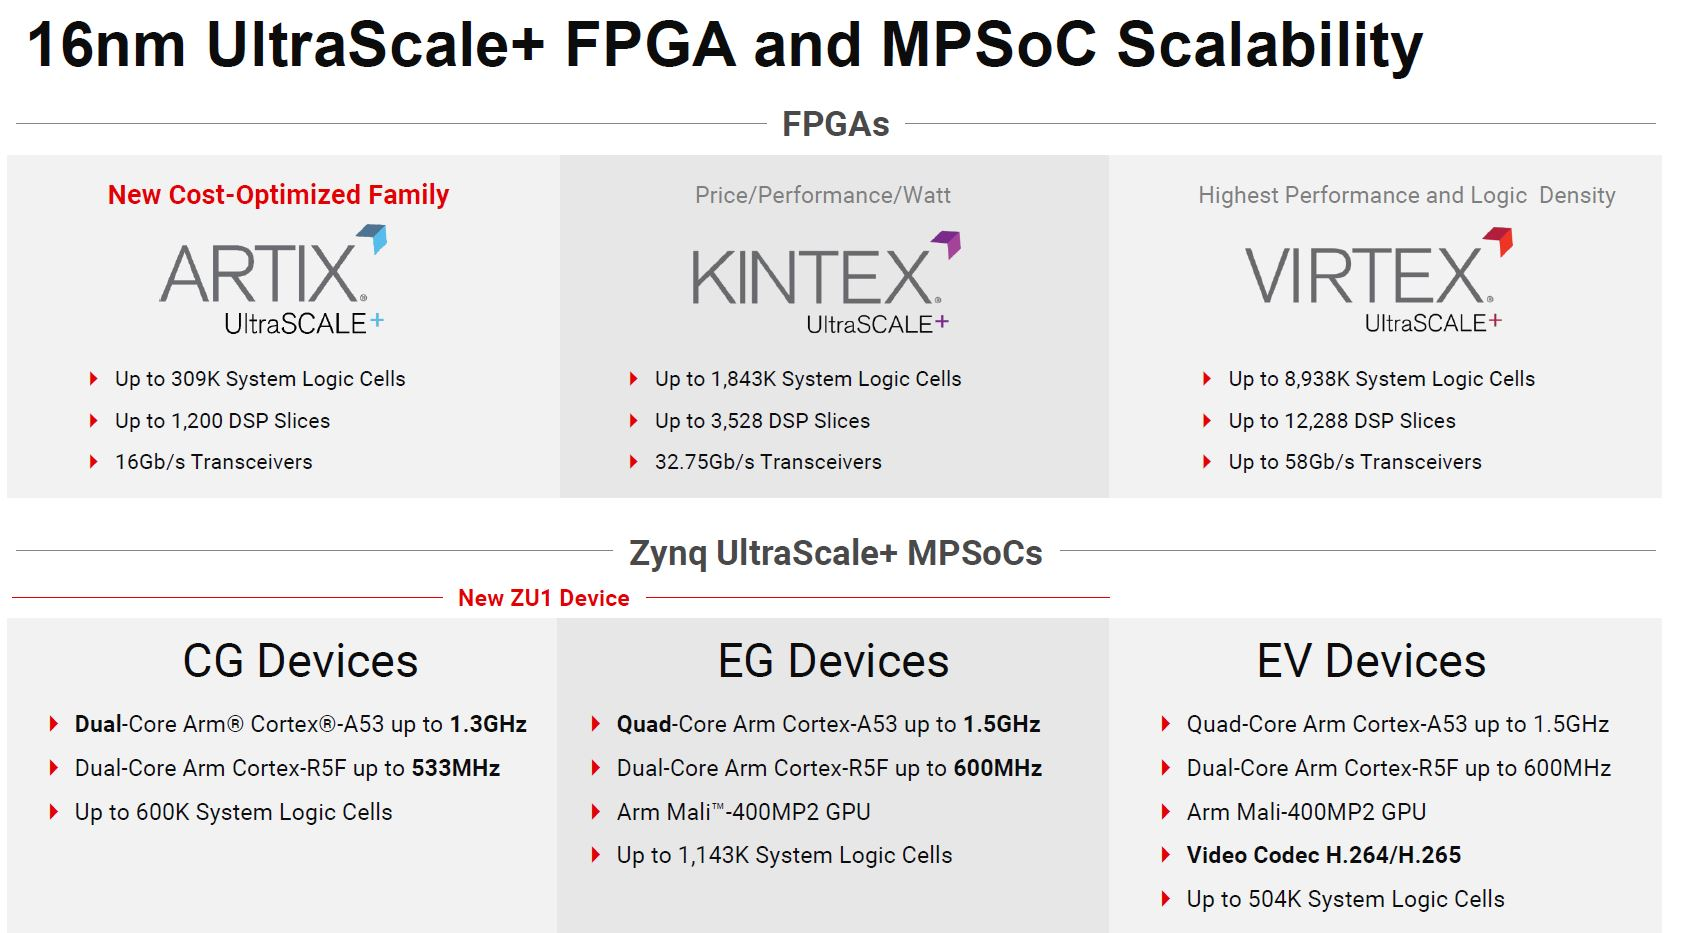 Xilinx Zynq And Artix UltraScale+ 16nm Family